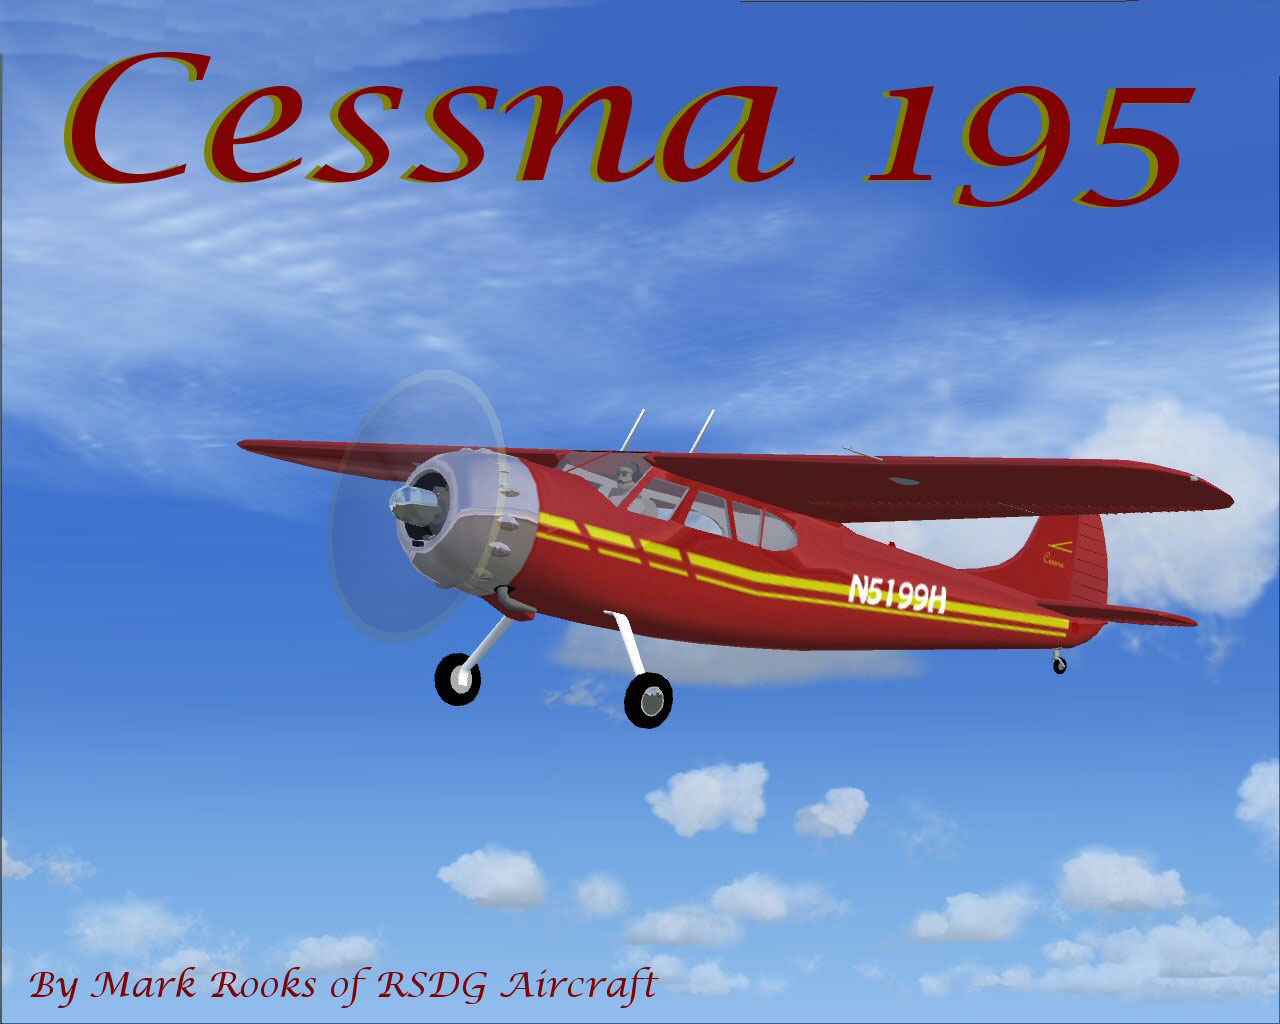 Red Bird Cessna 195 in flight.